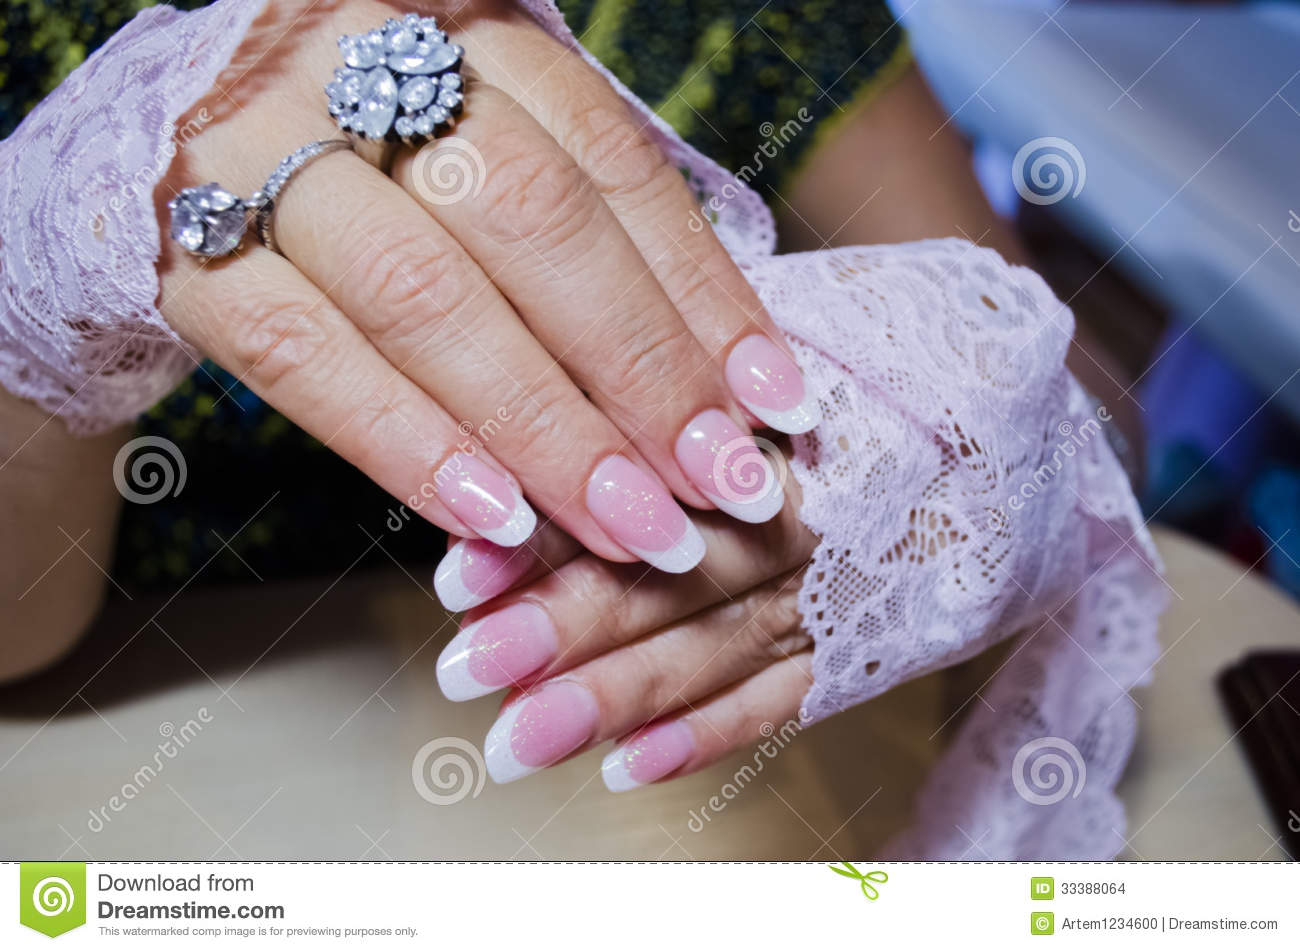 Stock Images: Artificial nails